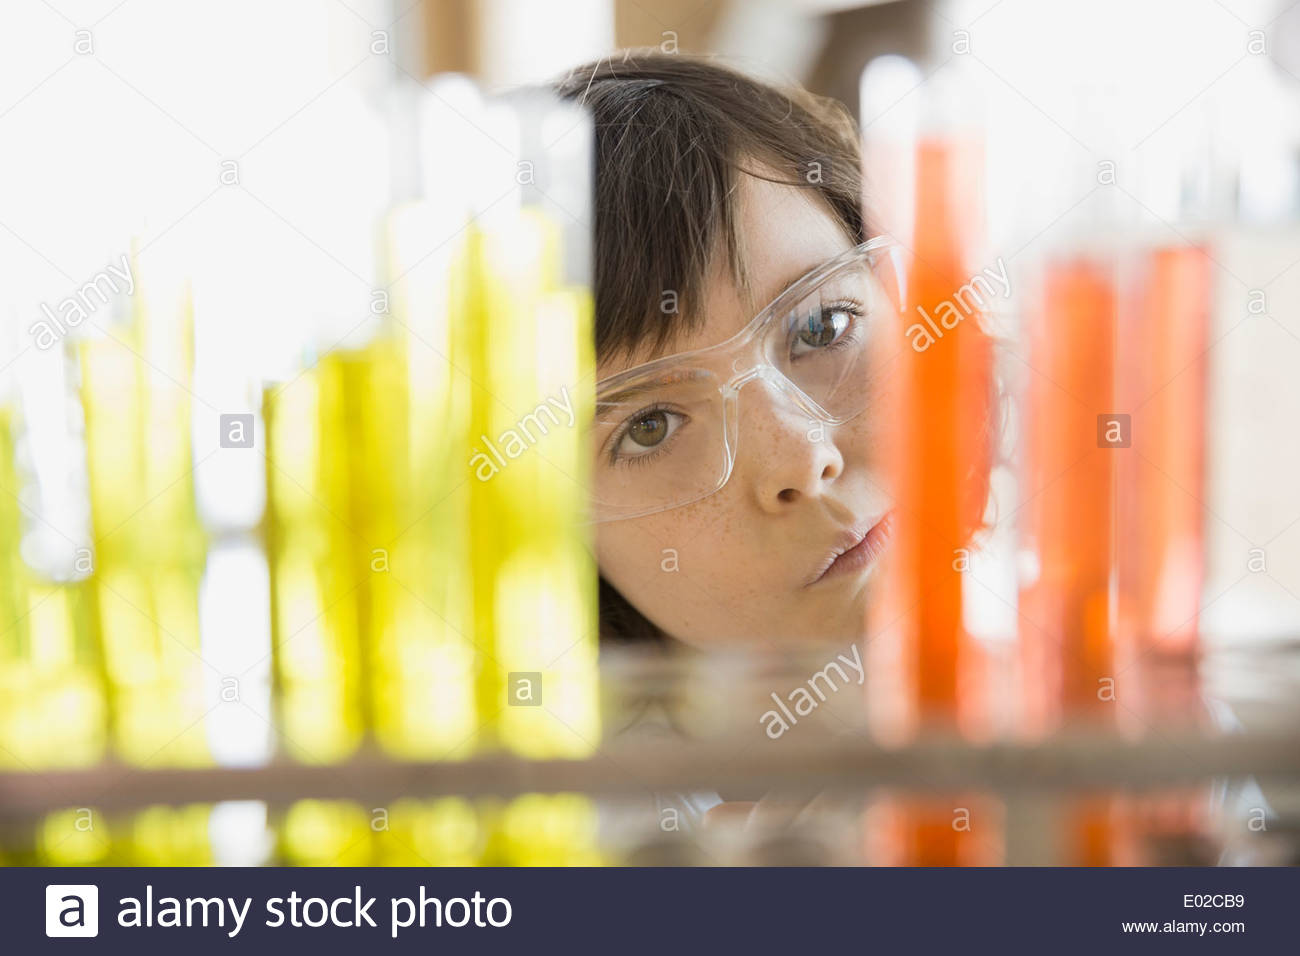 School girl looking at flacons dans science classroom Photo Stock